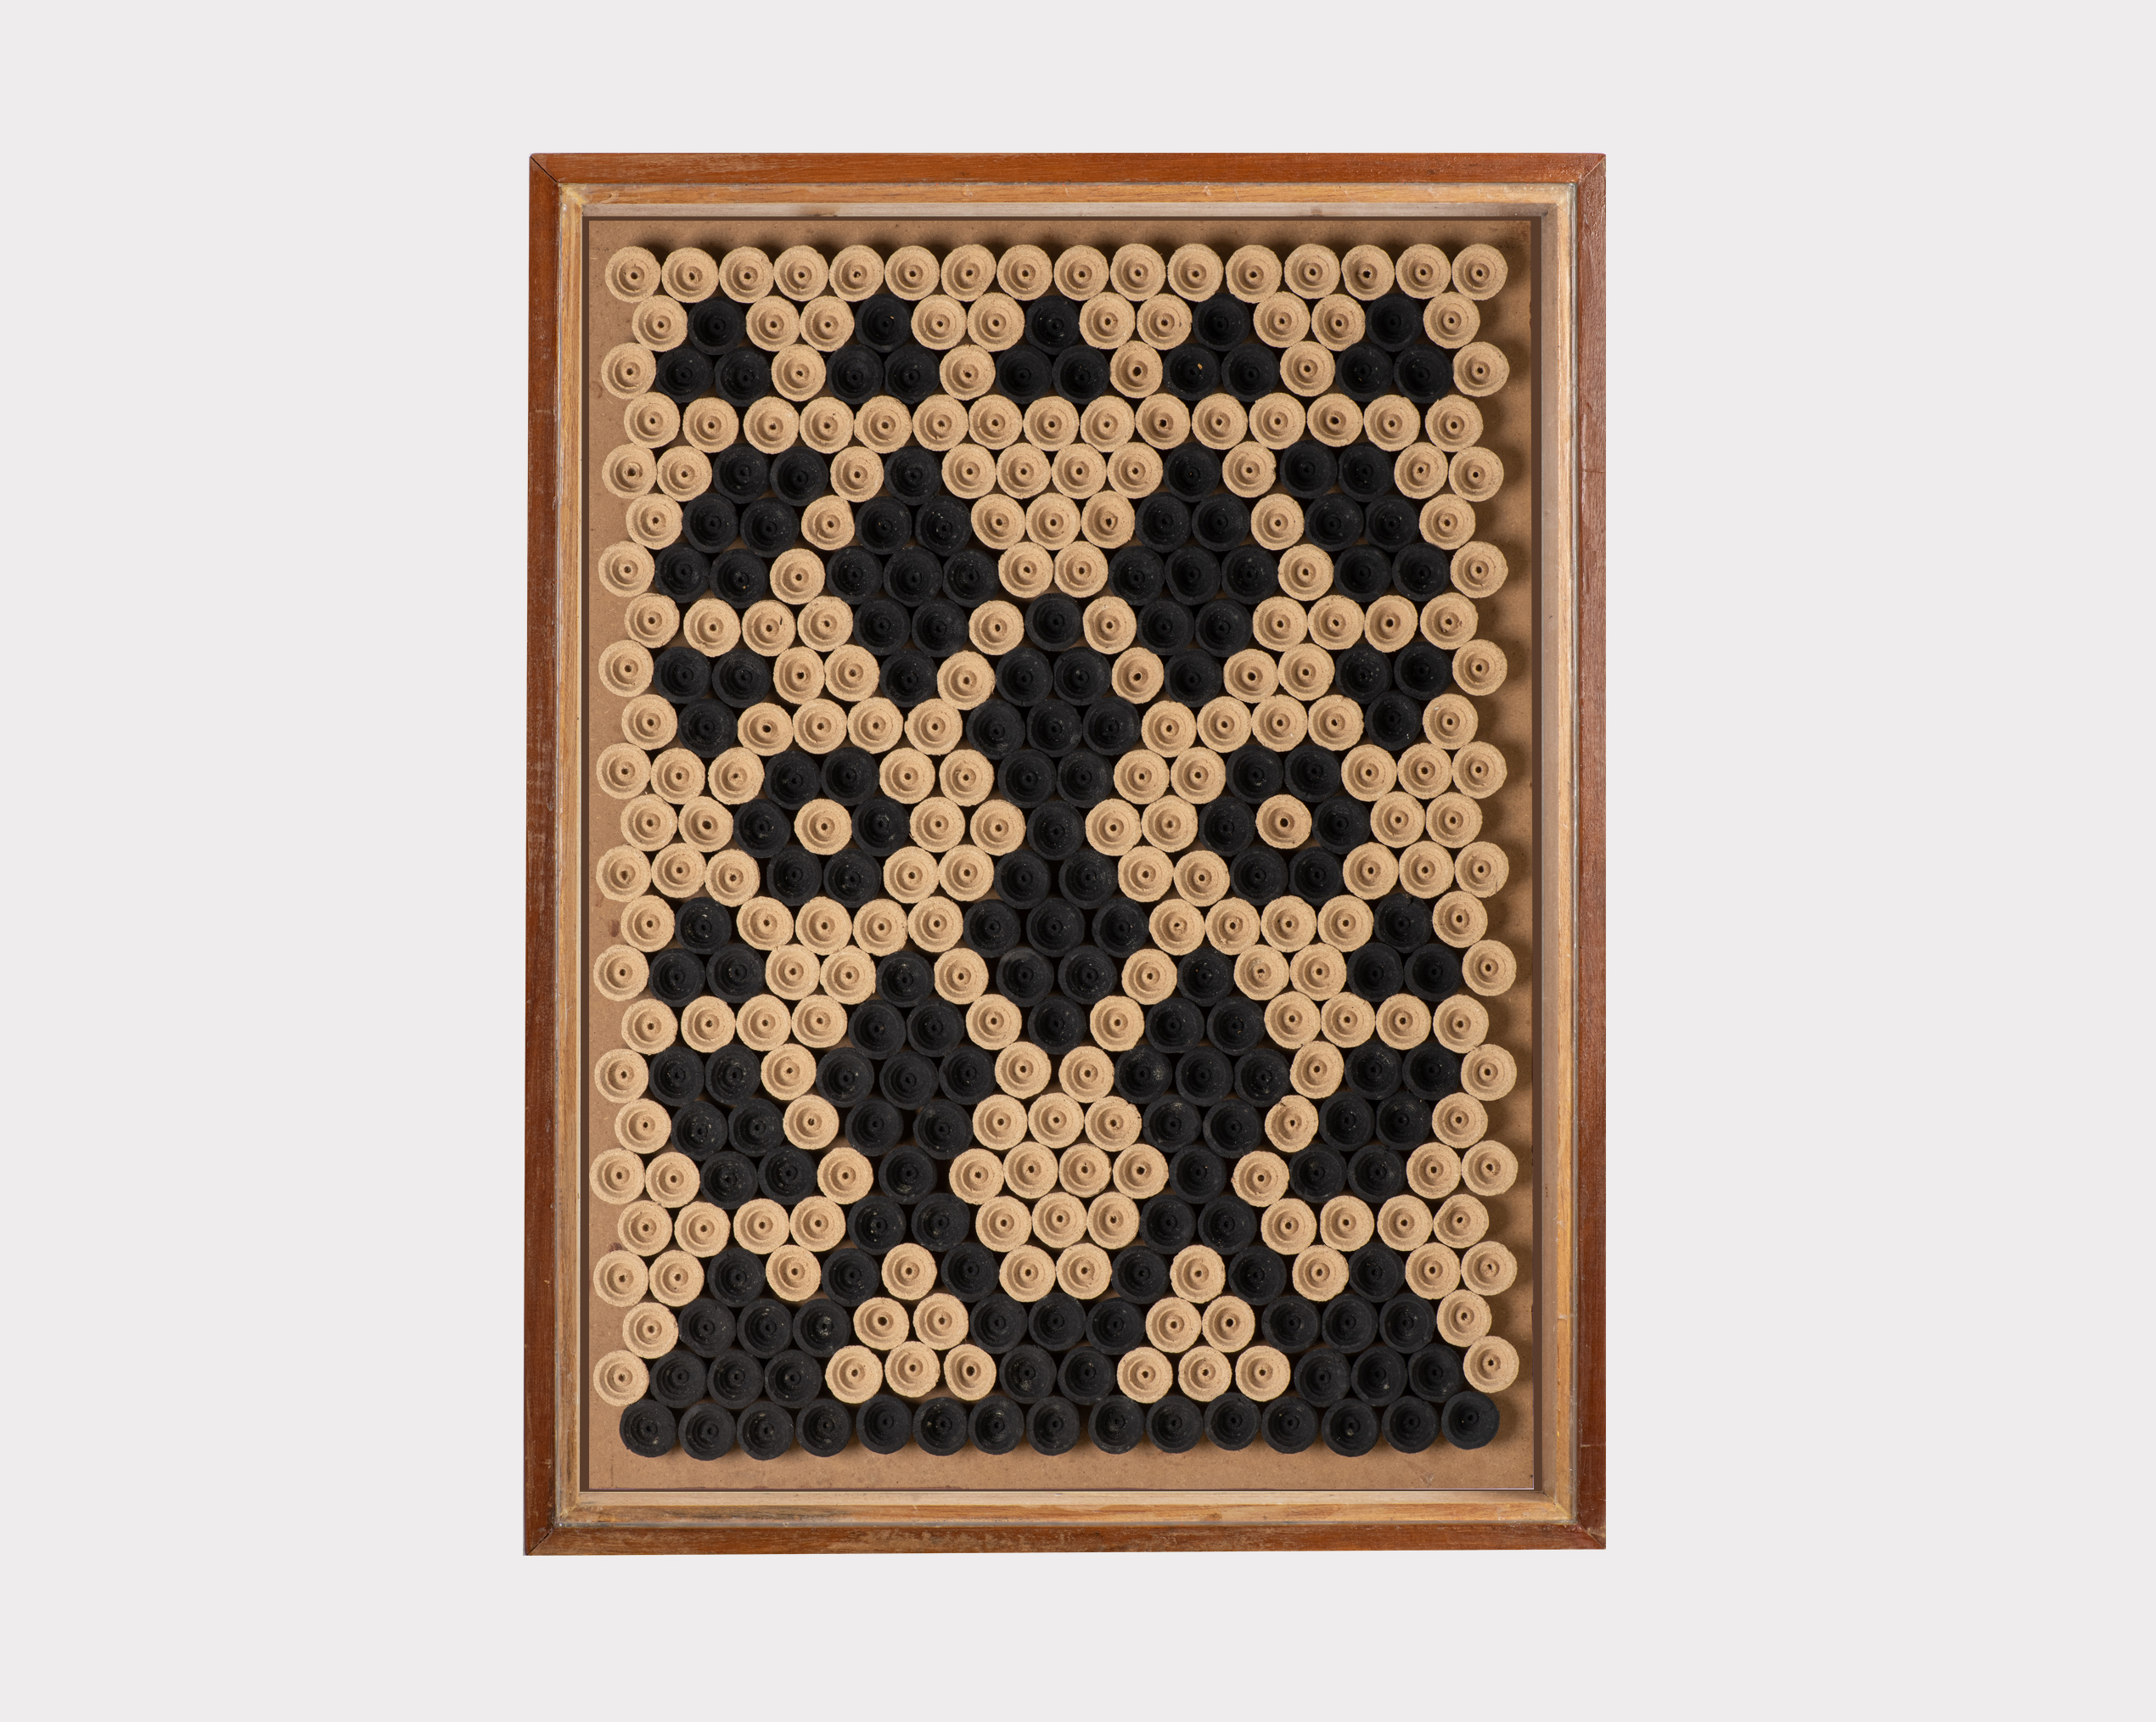 pattern 2(framed)